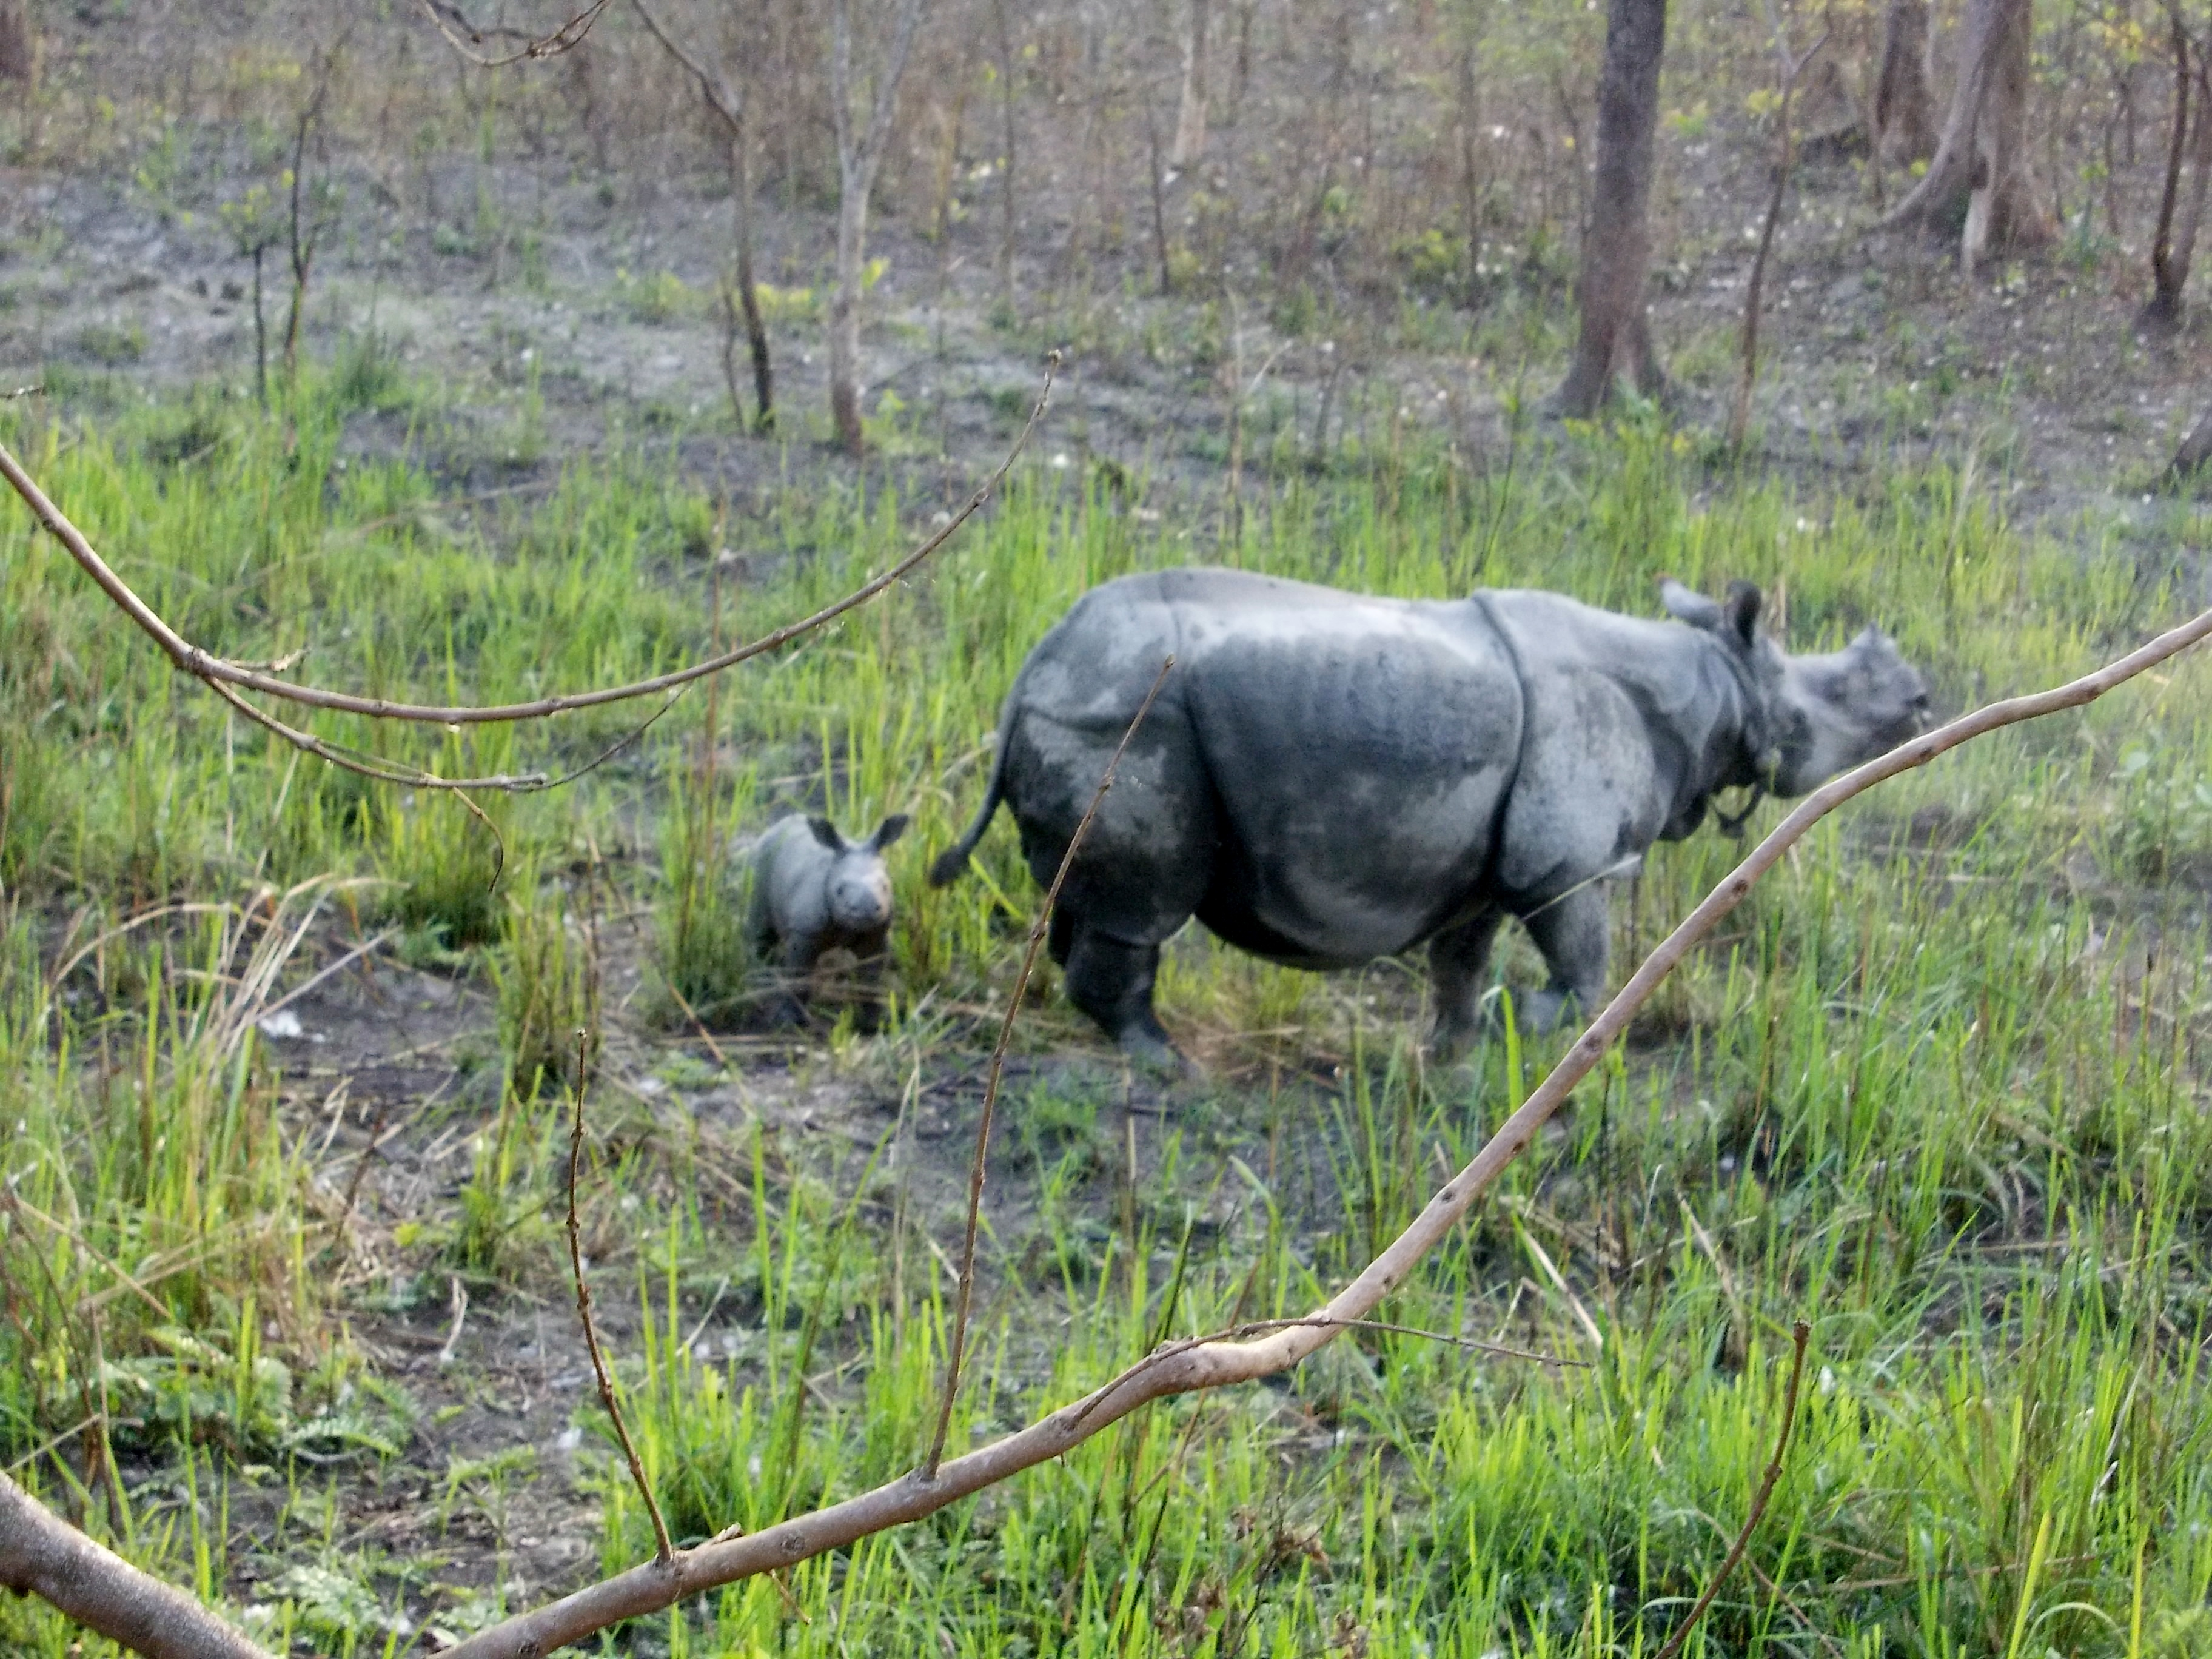 Rhino 17 with her new born calf in Manas National Park, Assam, India © Jamir Ali /WWF-India